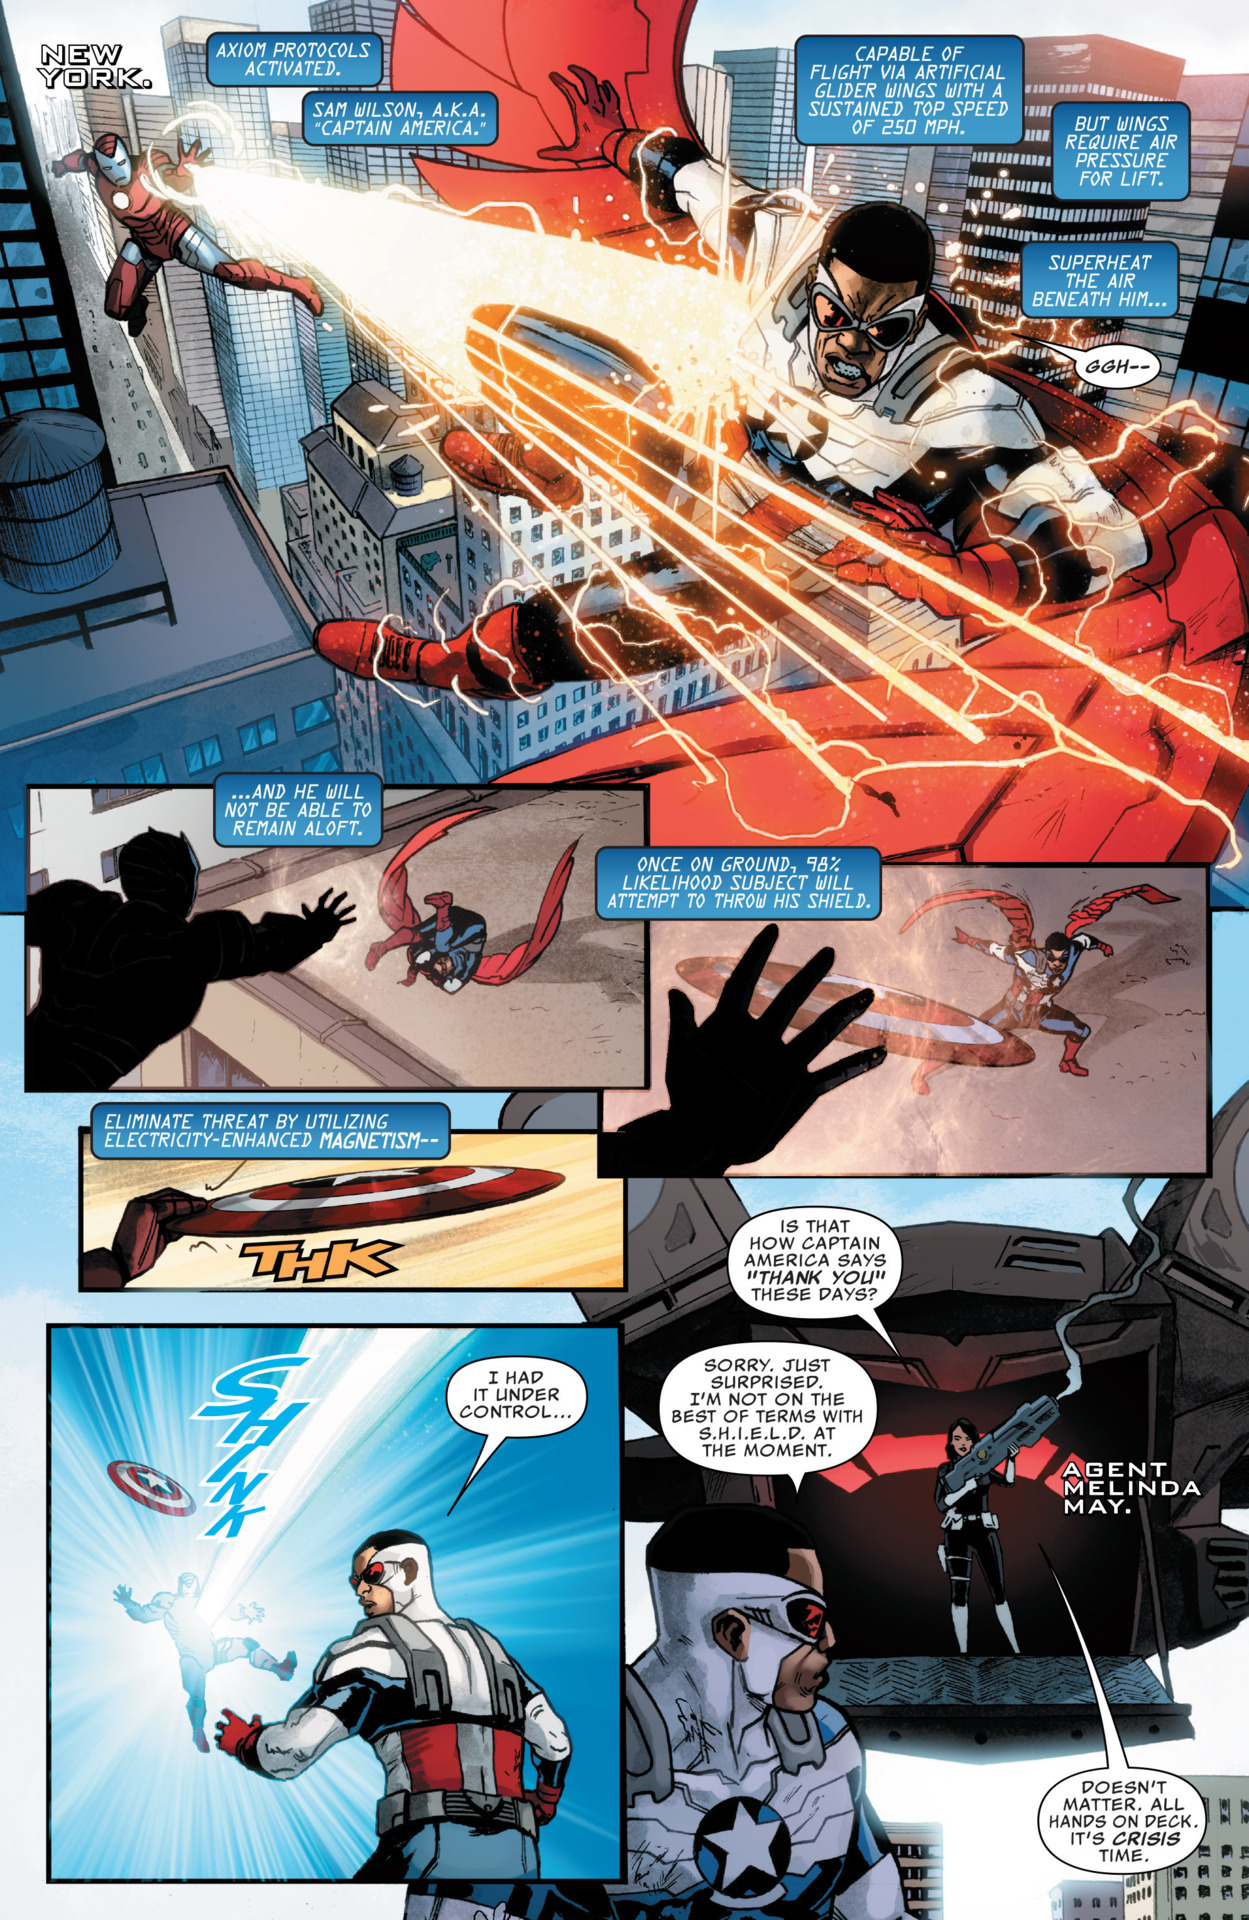 Even this Iron Imposter is one-shotted by Melinda May's featless SHIELD gun after the Iron Imposter embarrasses Sam Wilson.